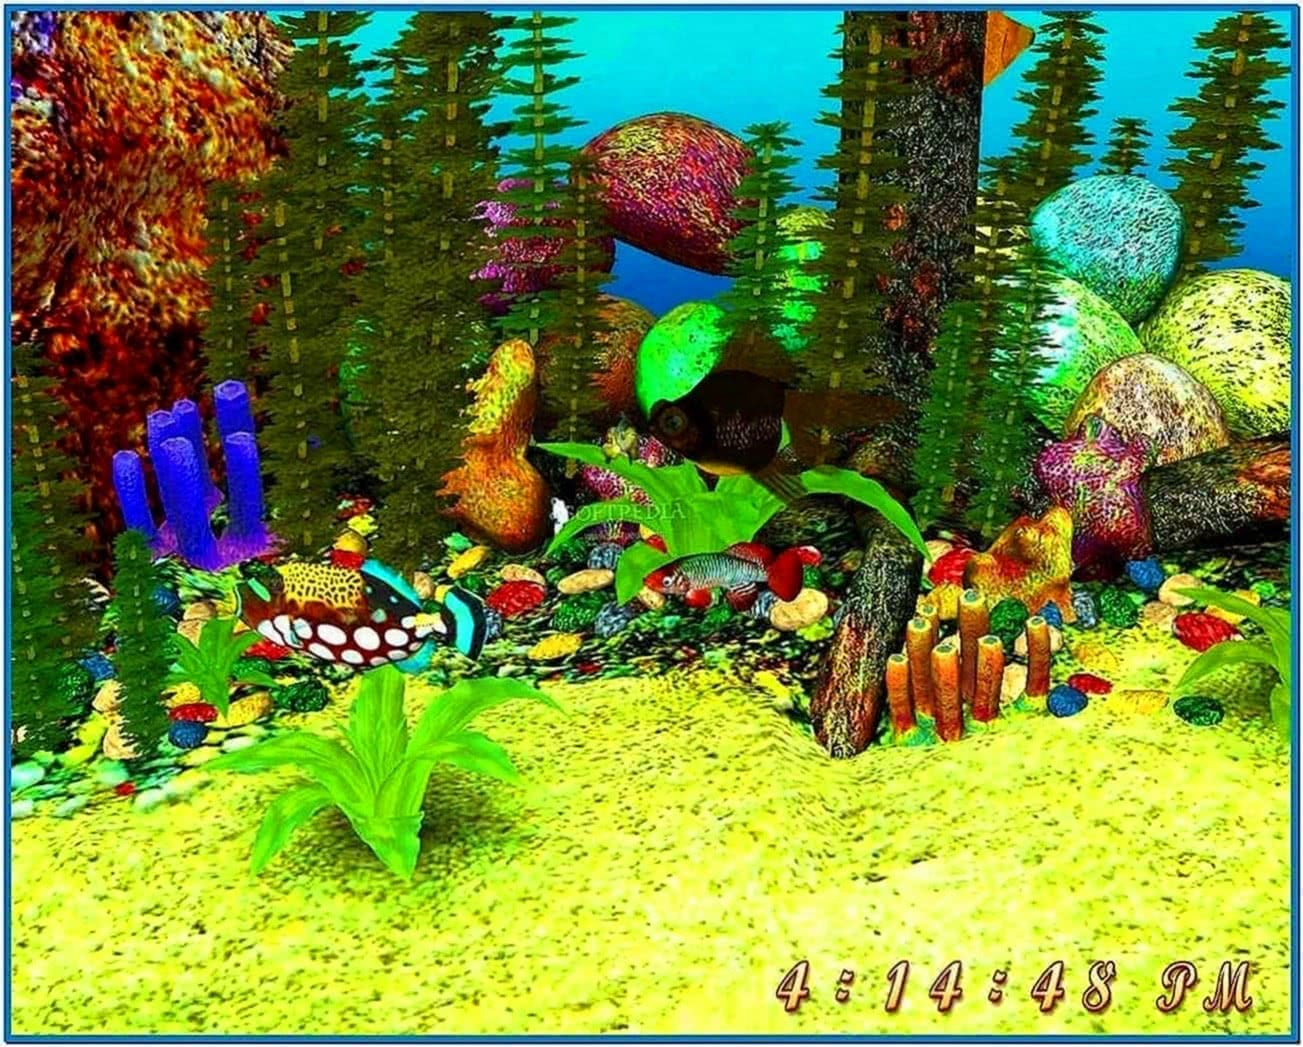 3D Aquarium Screensaver Freeware